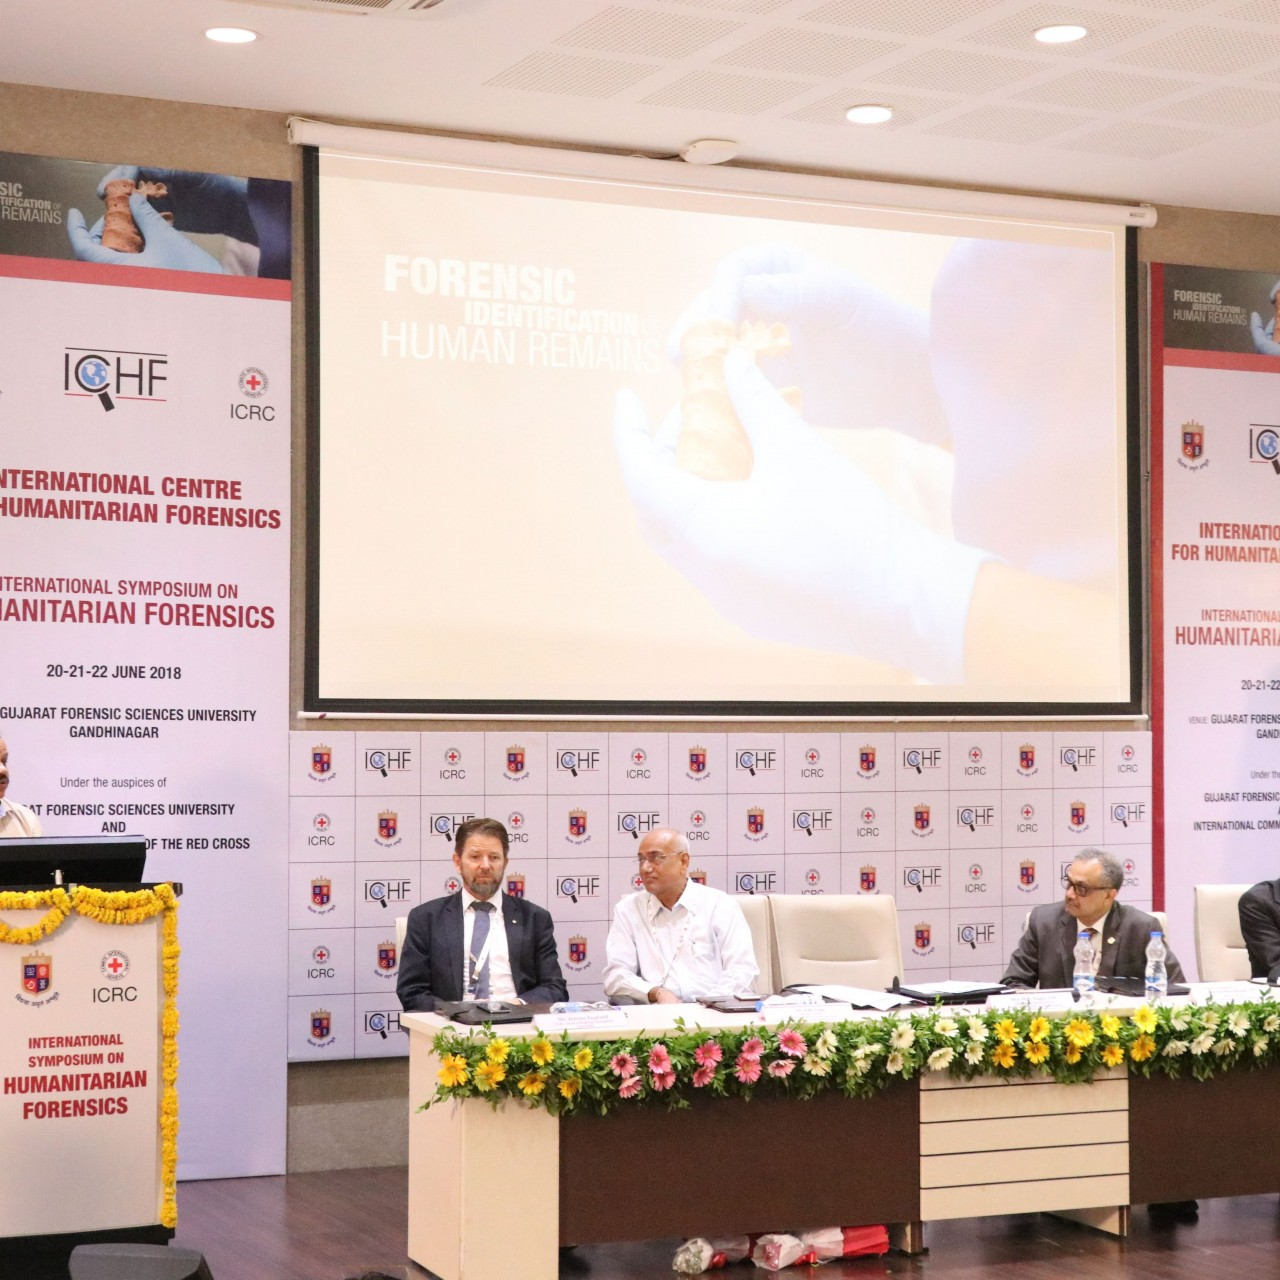 World S First International Centre For Humanitarian Forensics Launched In India International Committee Of The Red Cross